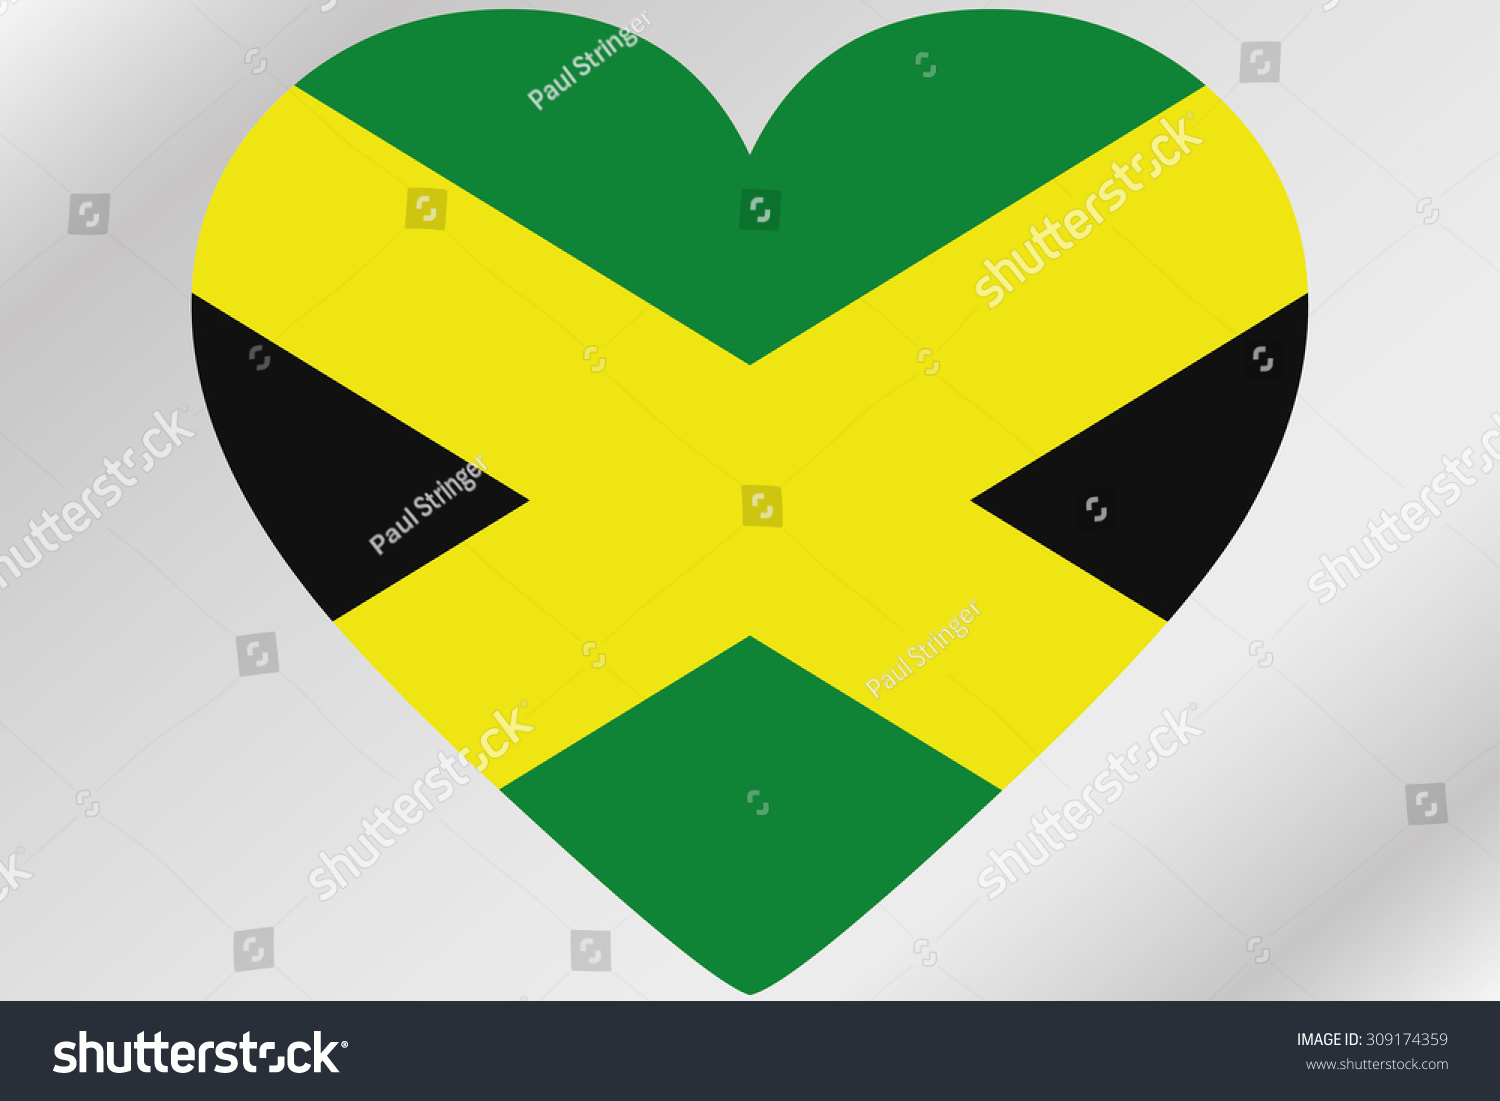 A flag illustration of a heart with the flag of jamaica